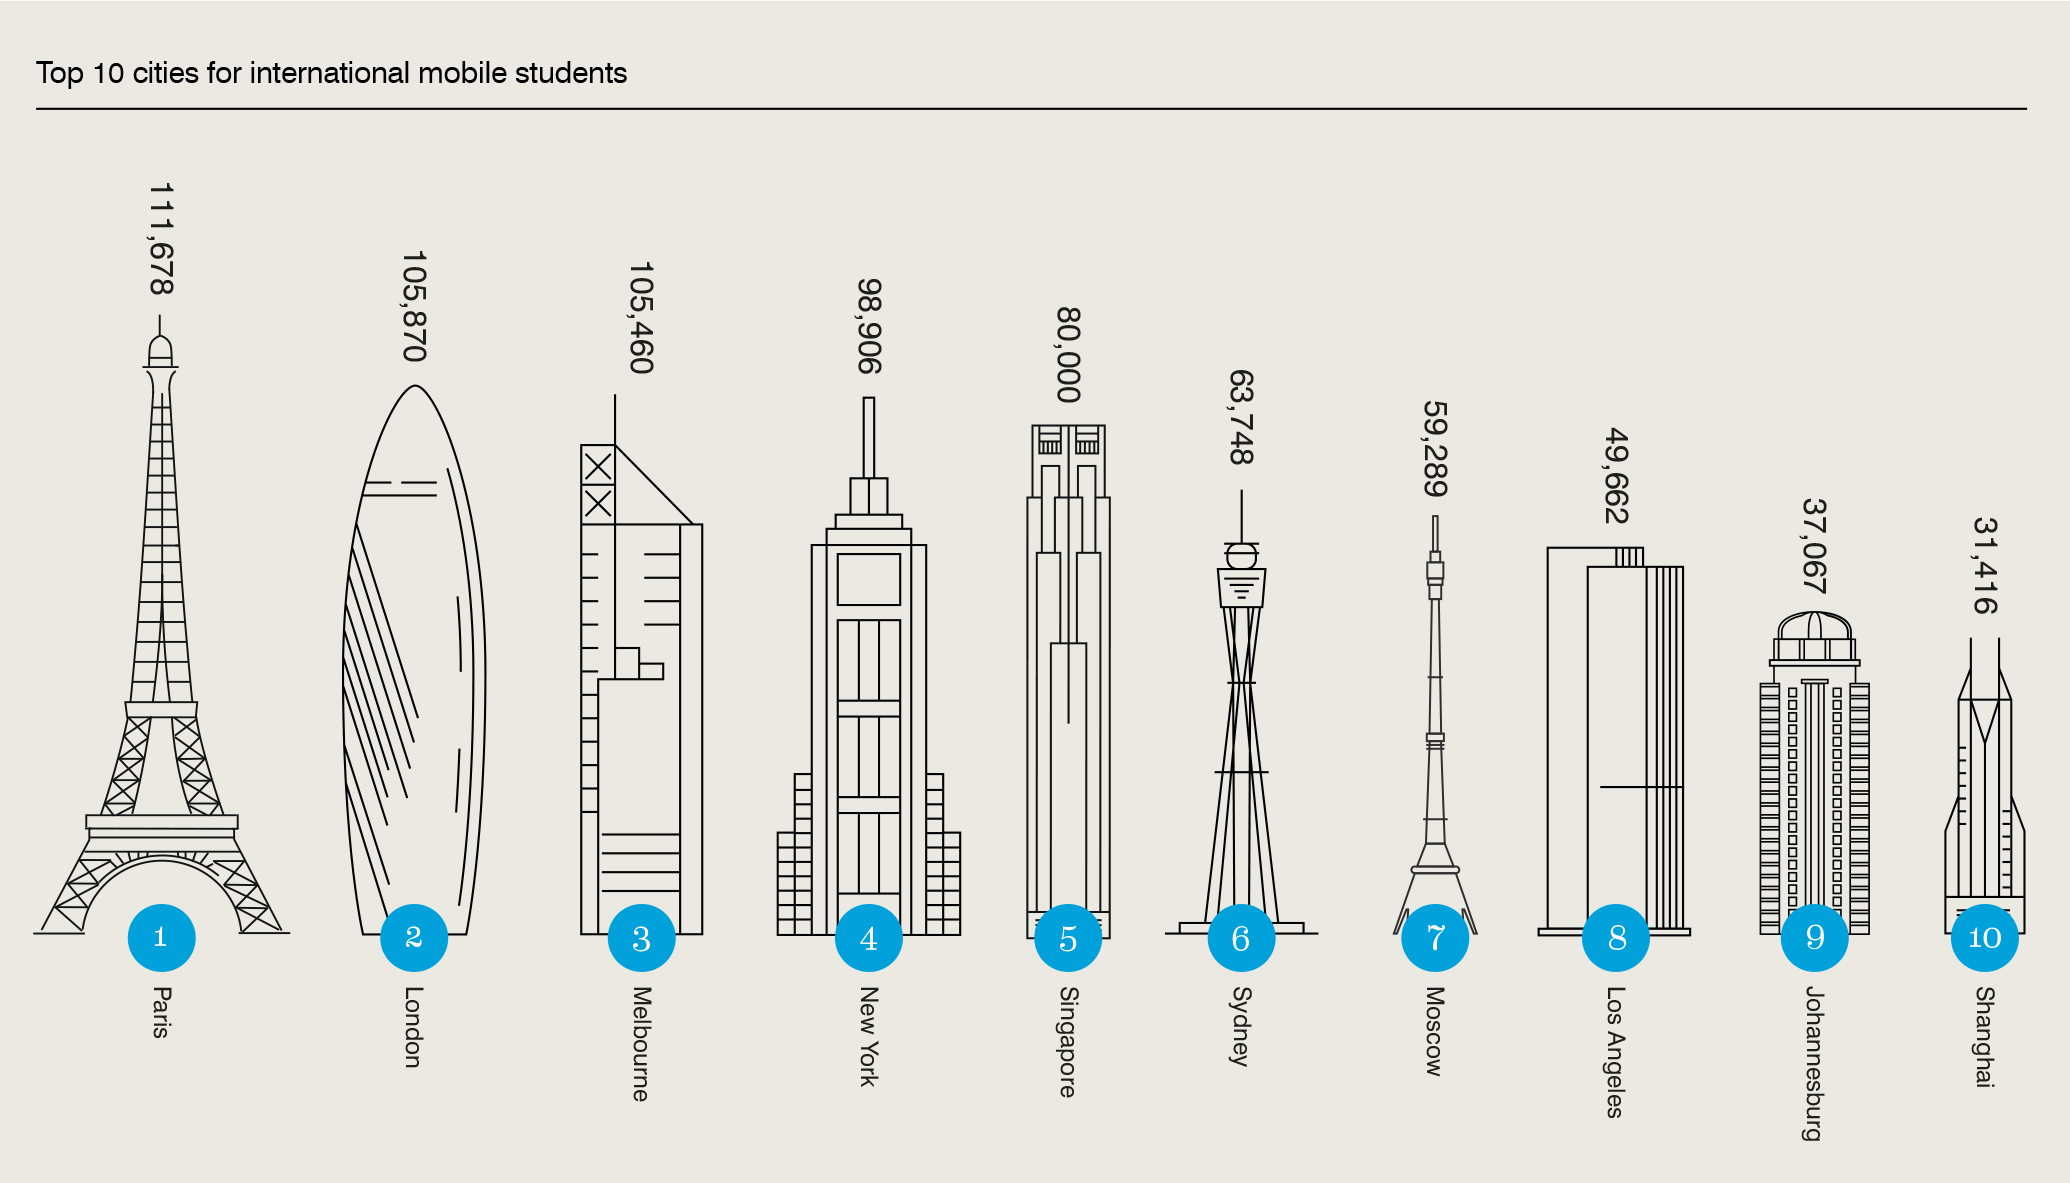 Top 10 cities for international mobile students, infographic with statistics